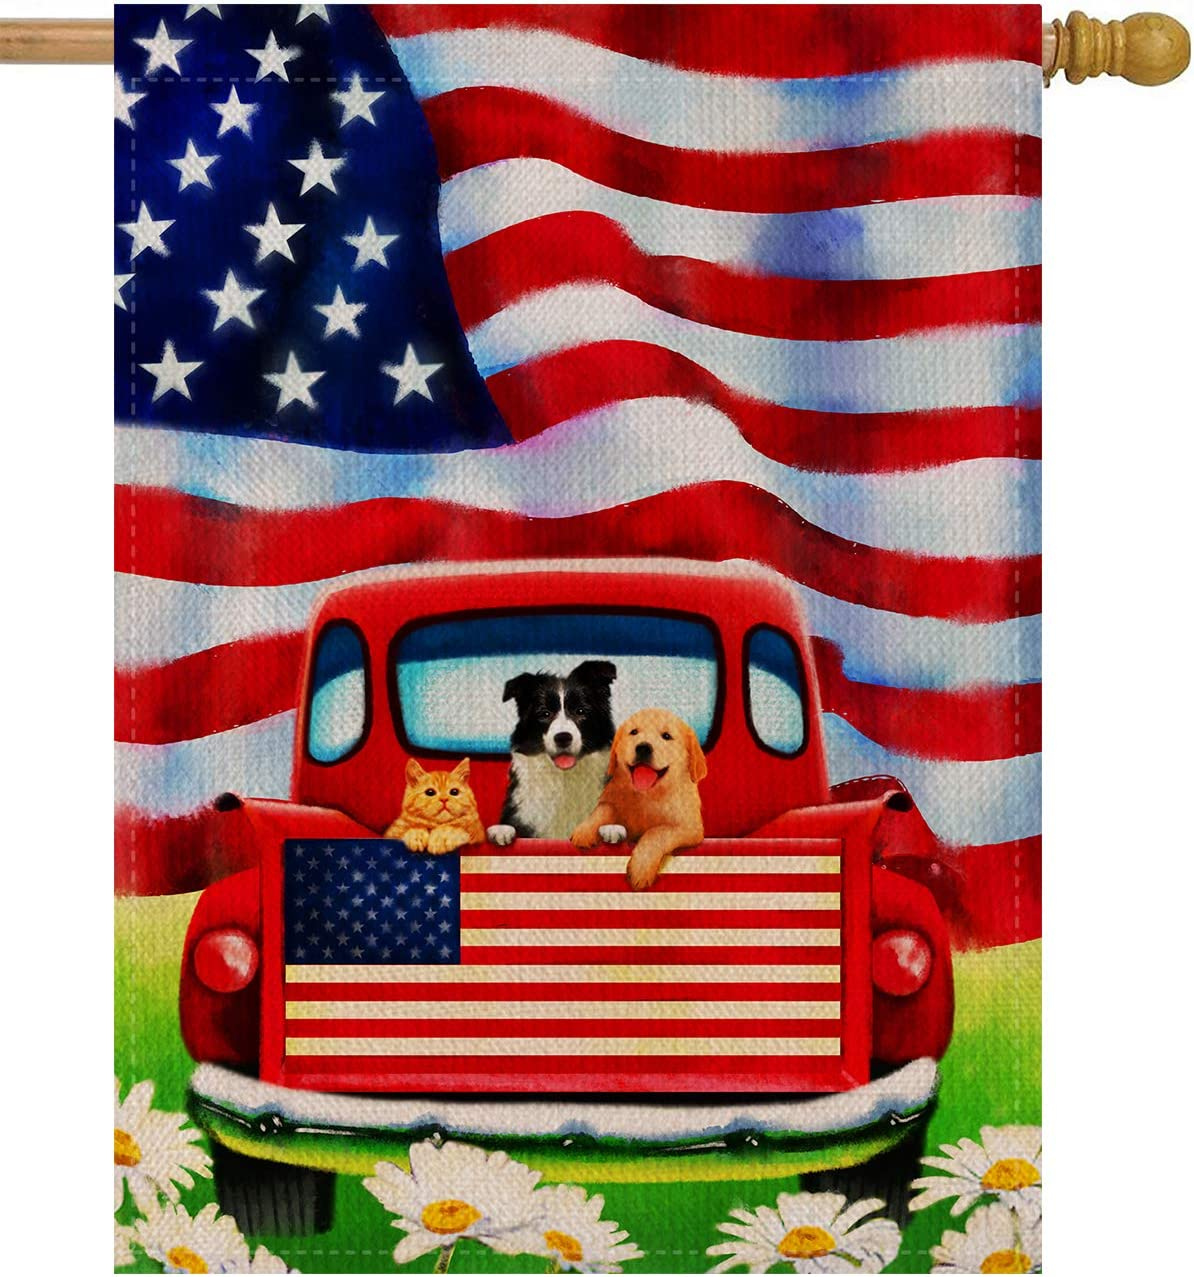 Dyrenson Home Garden Yard Decorative 4th Of July Dog Flowers House Flag Large Double Sided Burlap Rustic Farm Old Red Truck Daisy 28 X 40 Flag American Holiday Usa Seasonal Outdoor Décor Garden Outdoor